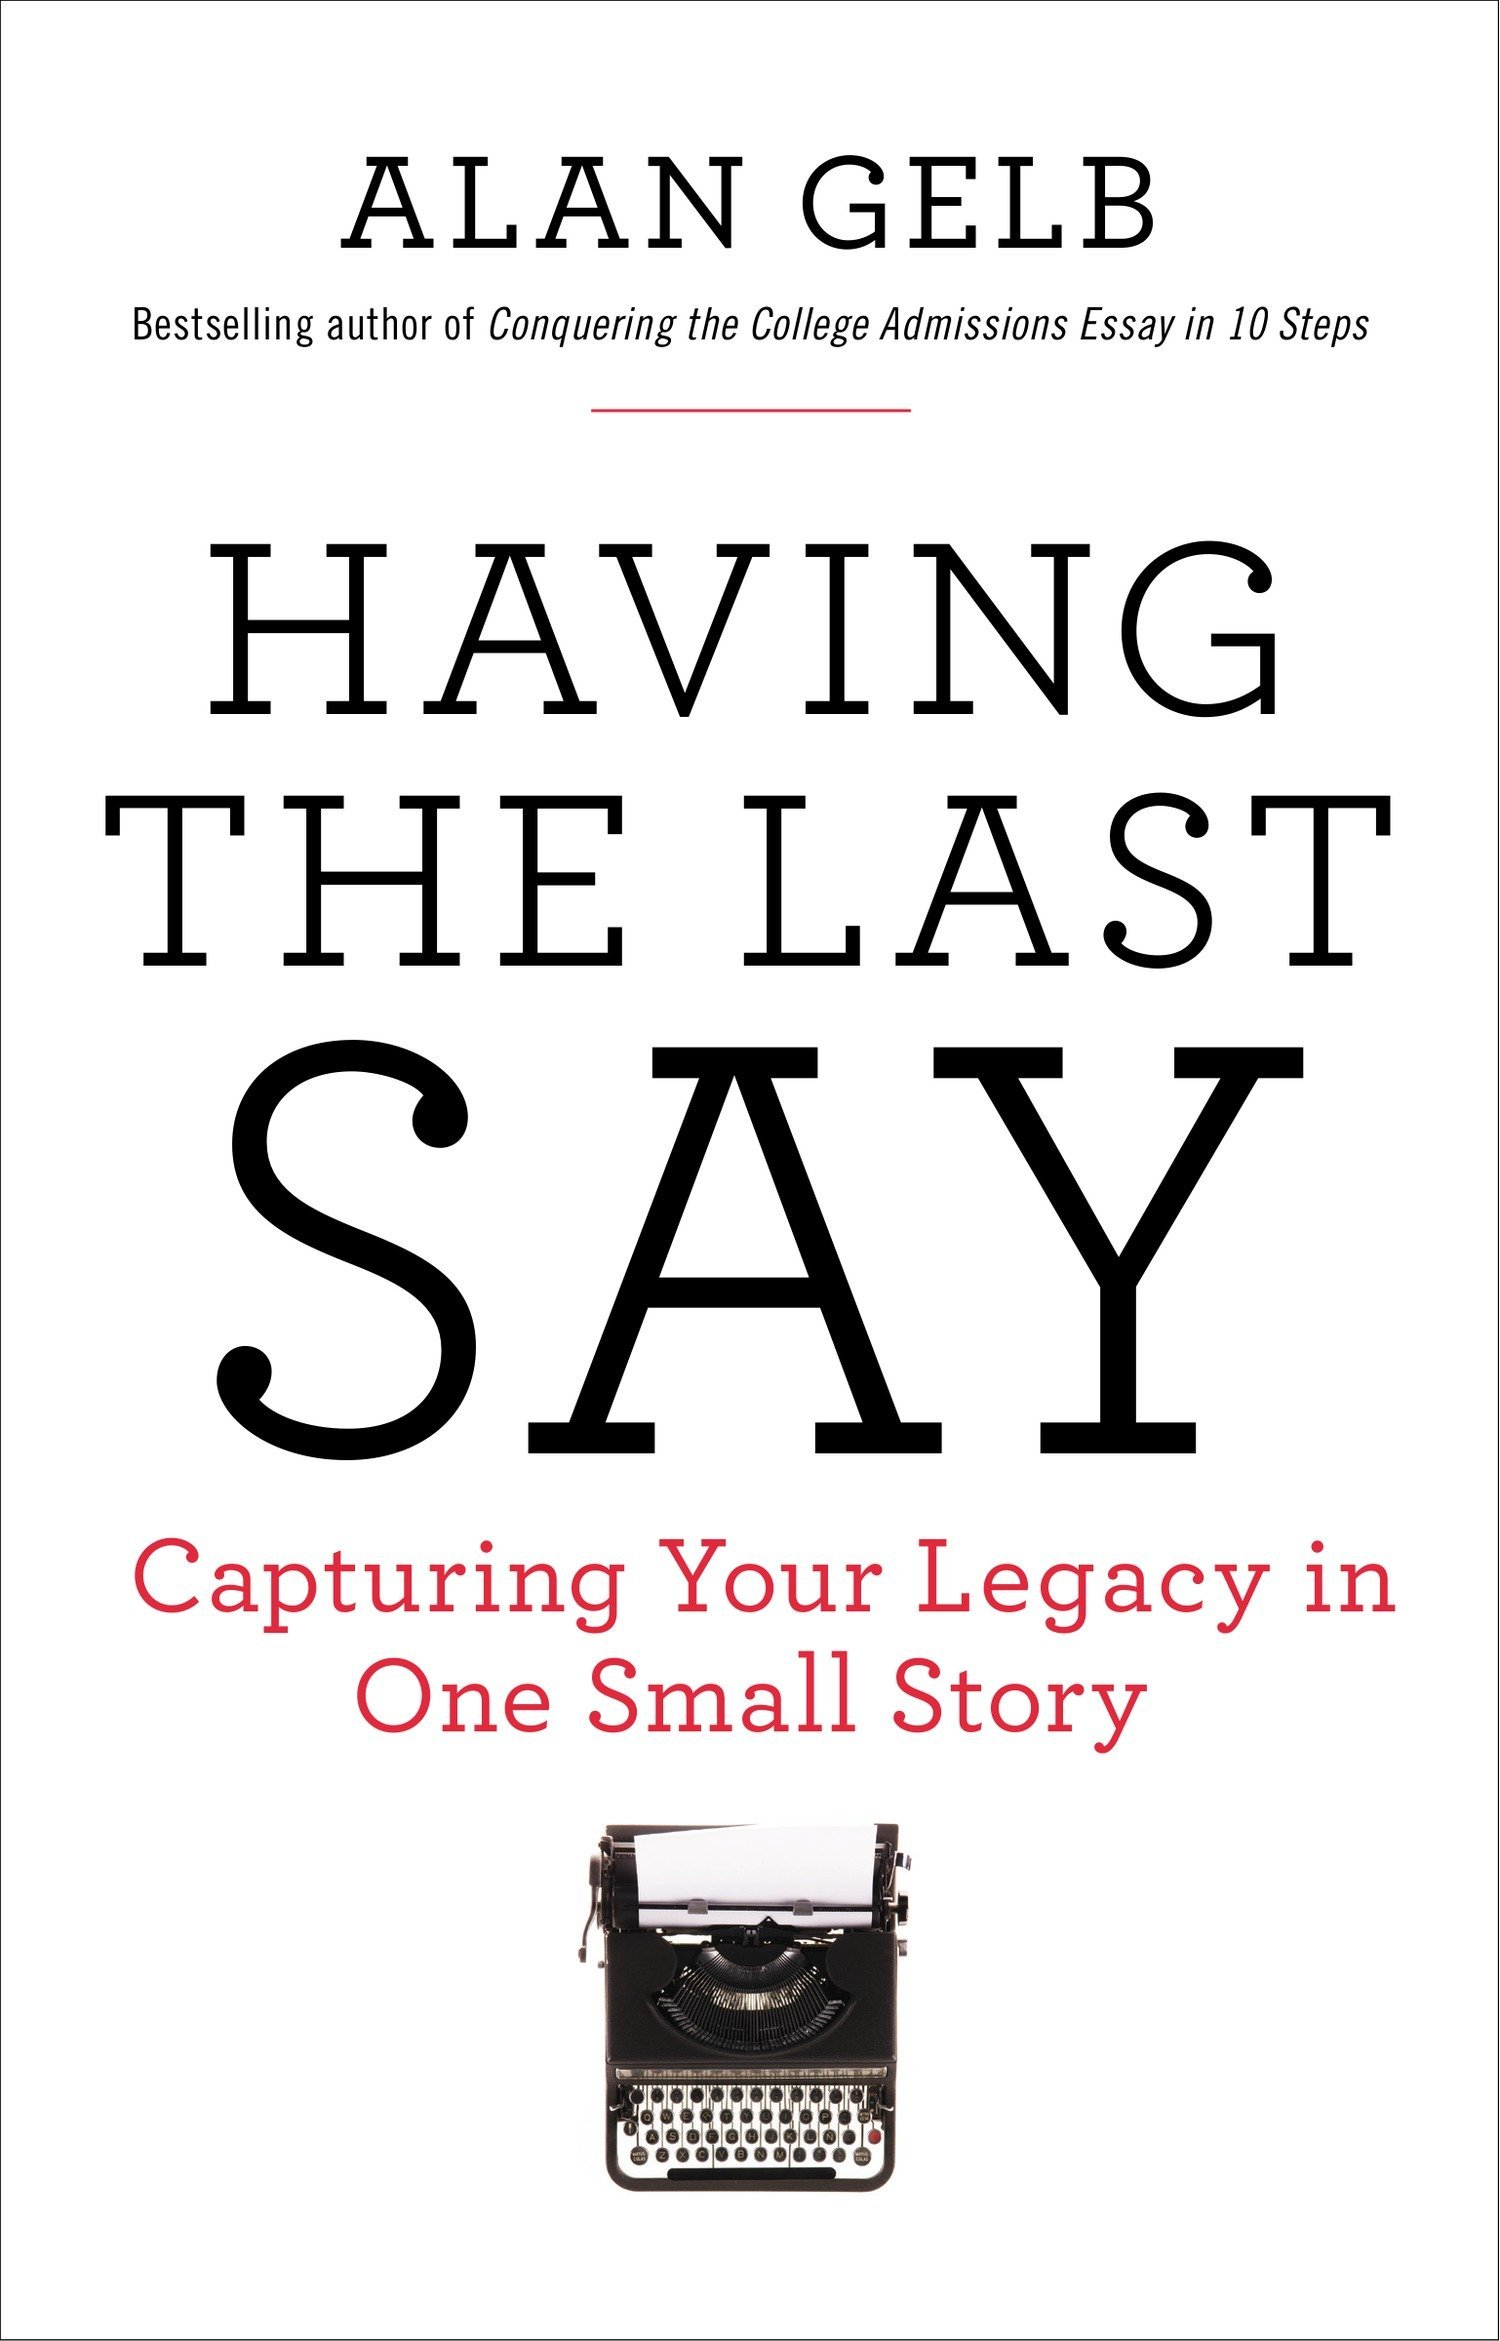 Having the Last Say by Alan Gelb features a crisp white cover, bold text, with a small photo of a typewriter at the bottom.